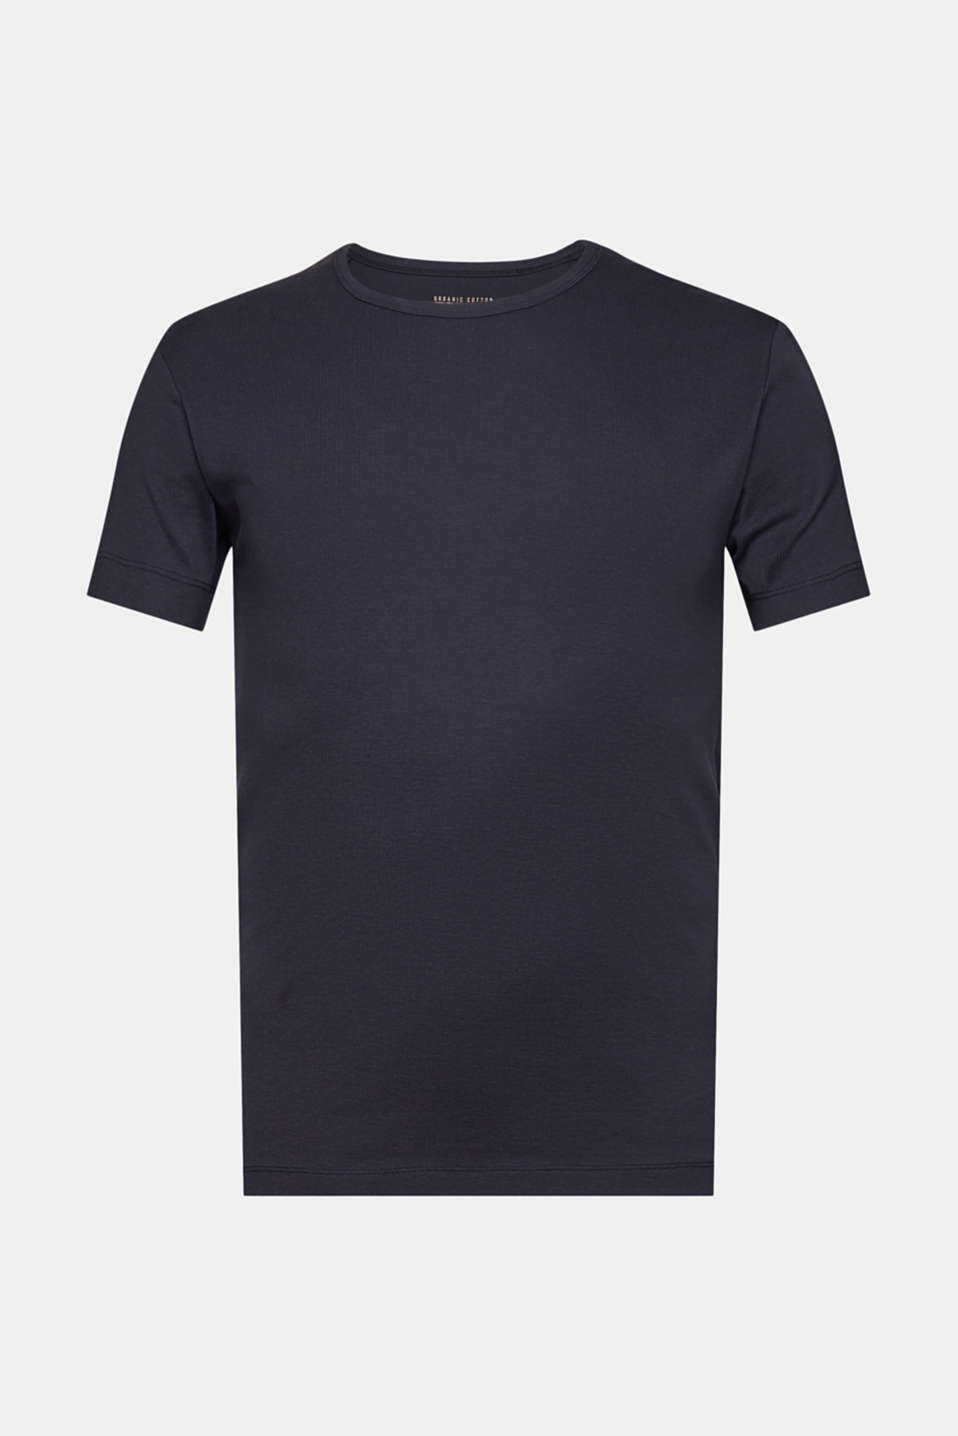 Ribbed jersey top made of 100% cotton, NAVY, detail image number 7